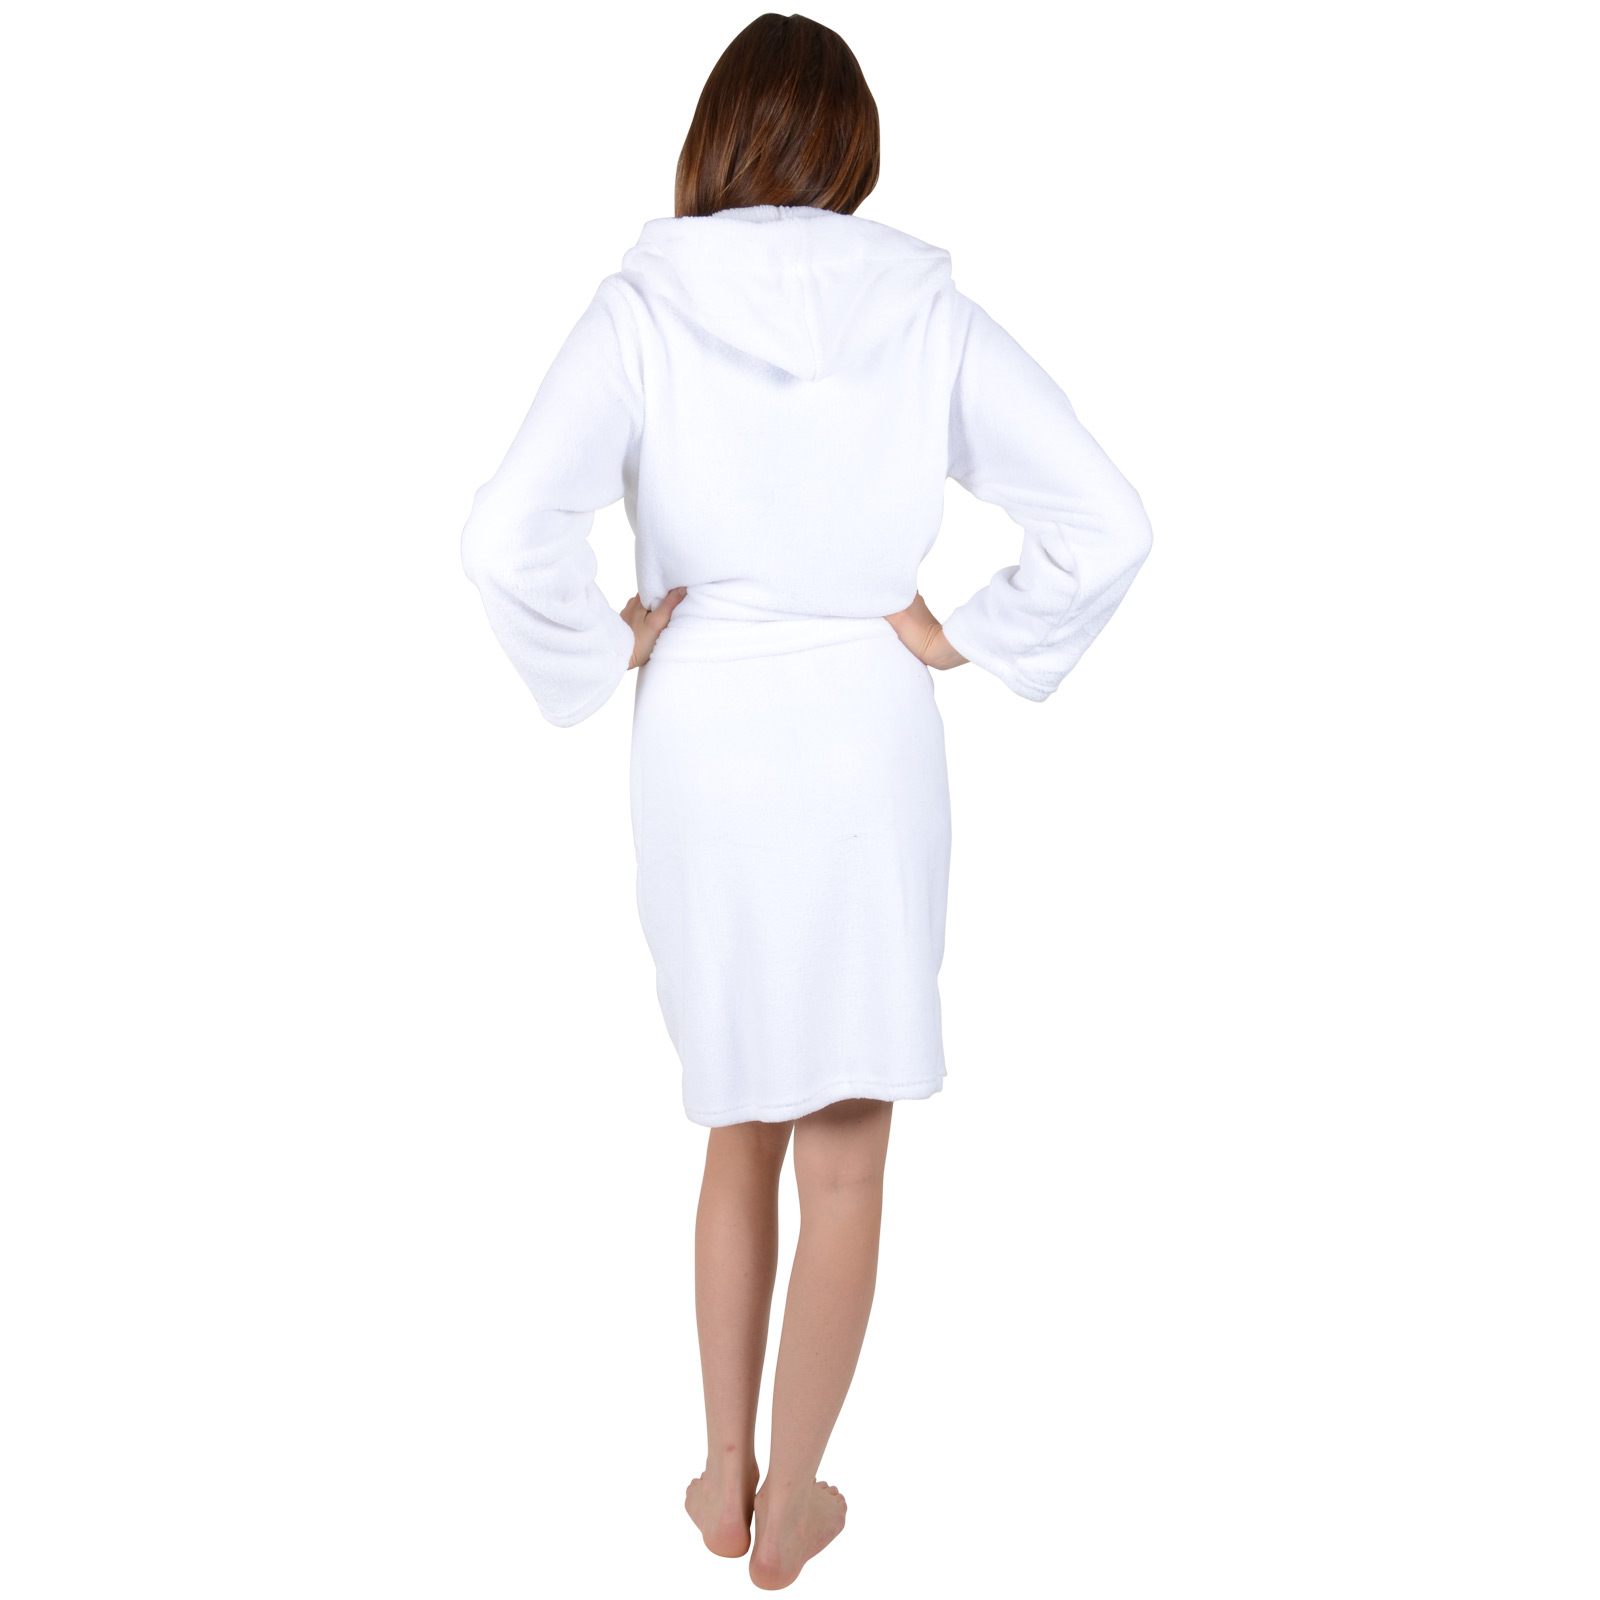 f3c76a7bb2be8 Home / Women / Ladies White Soft Coral Fleece Bath Robe With Hood Dressing  Gown Wrap Housecoat